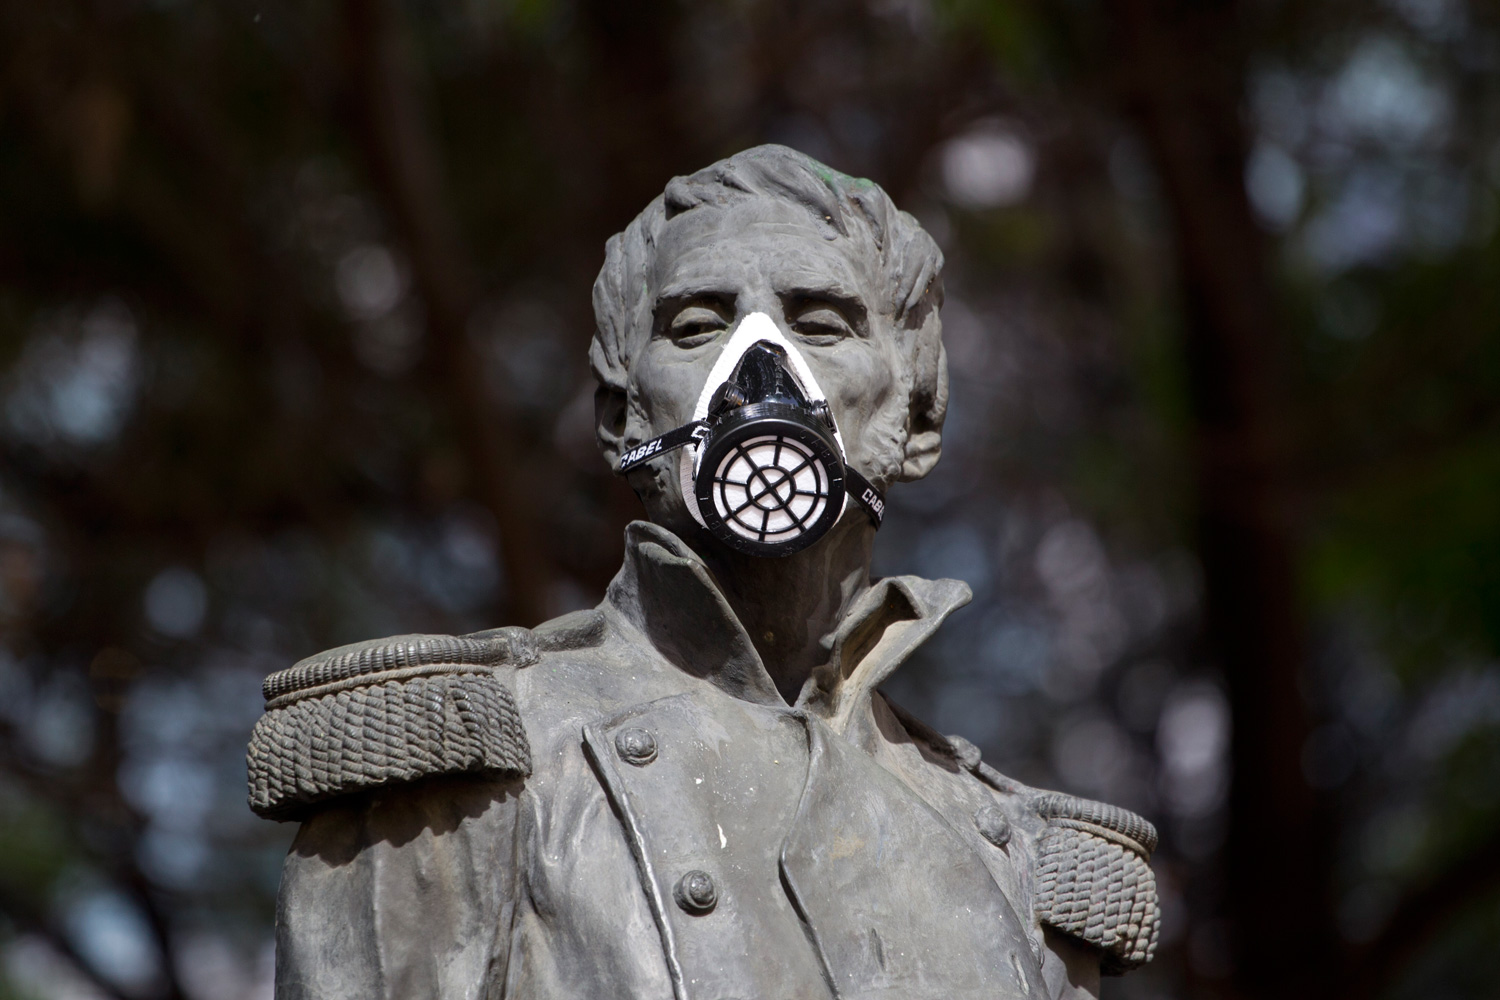 Feb. 28, 2012. A gas mask covers the mouth on the statue of independence hero Leonardo Bravo to protest pollution in Mexico City.